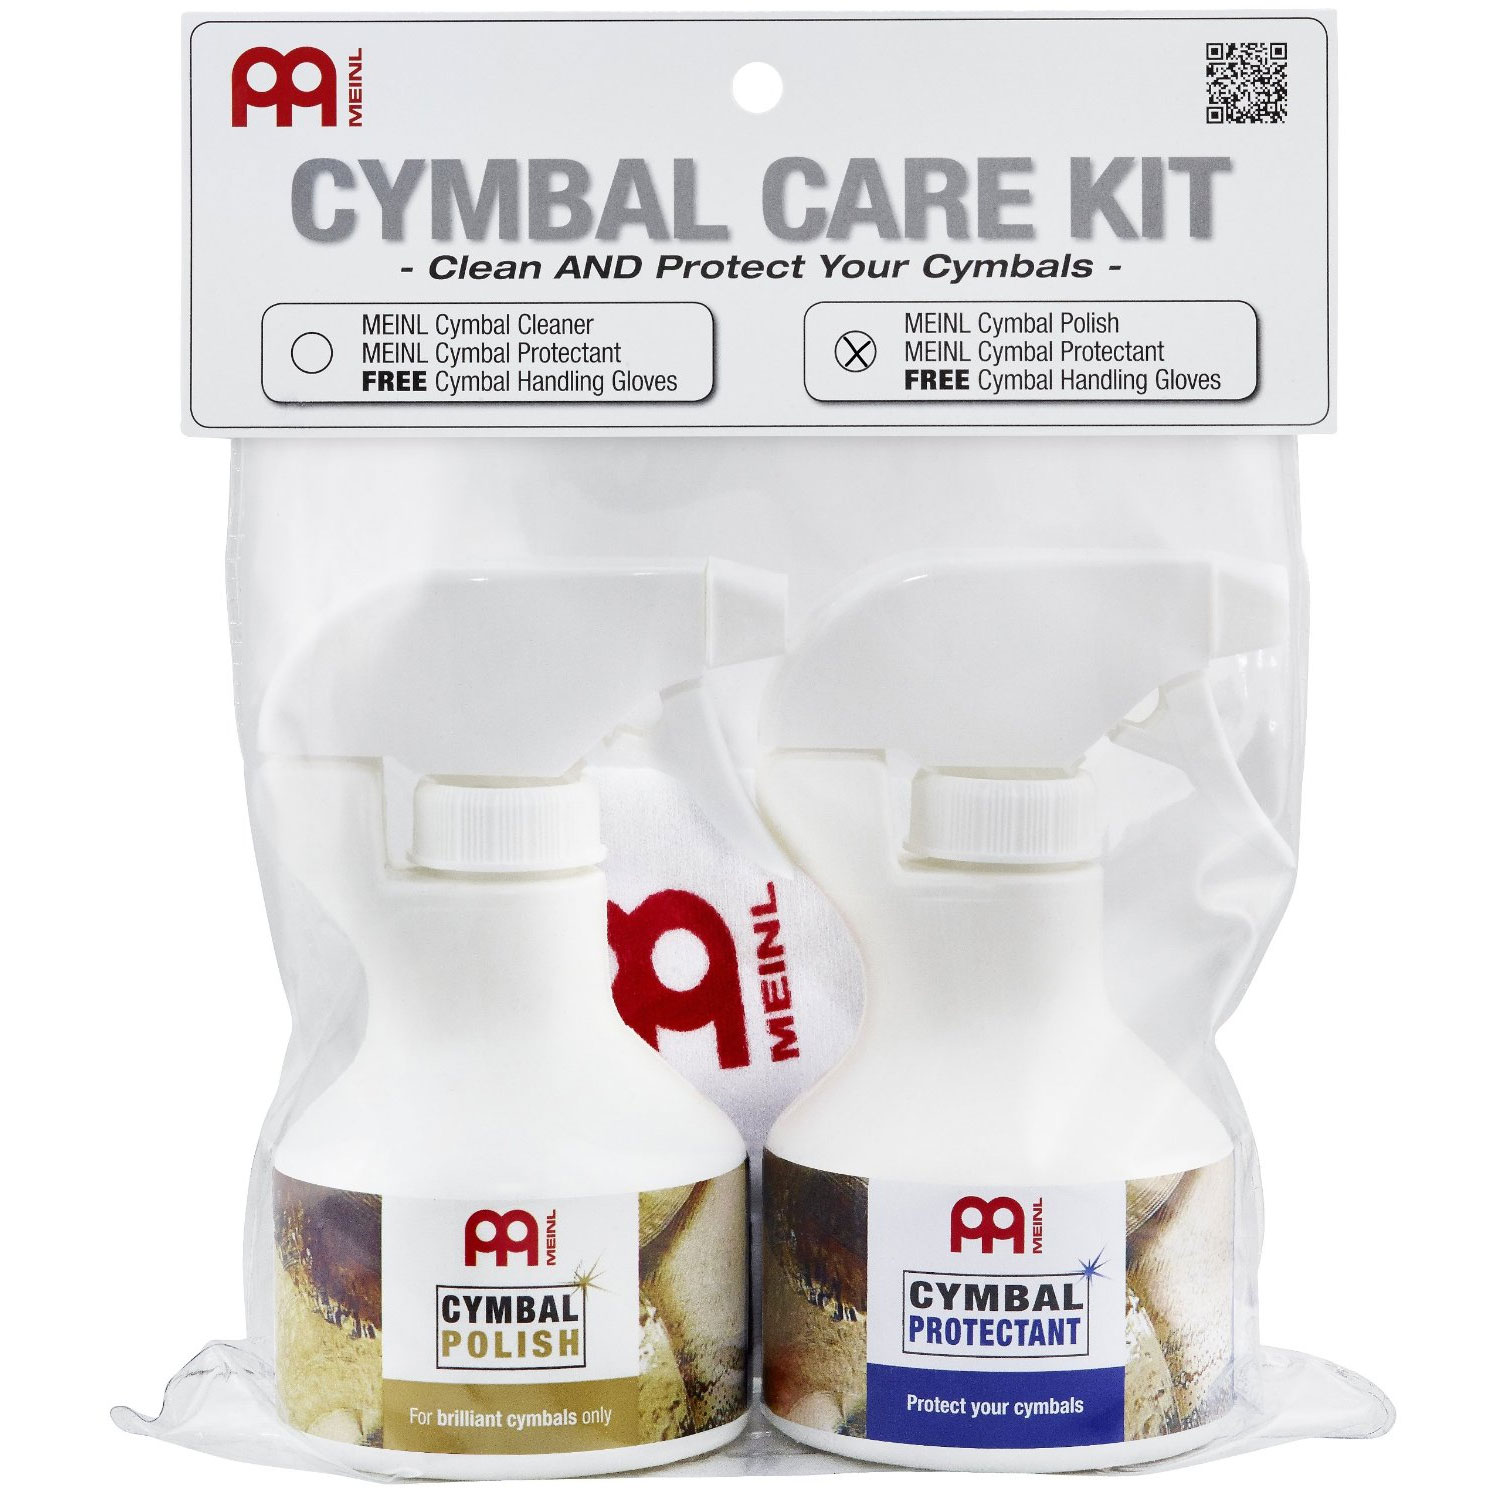 Meinl Cymbal Care Kit (Polish and Protectant)